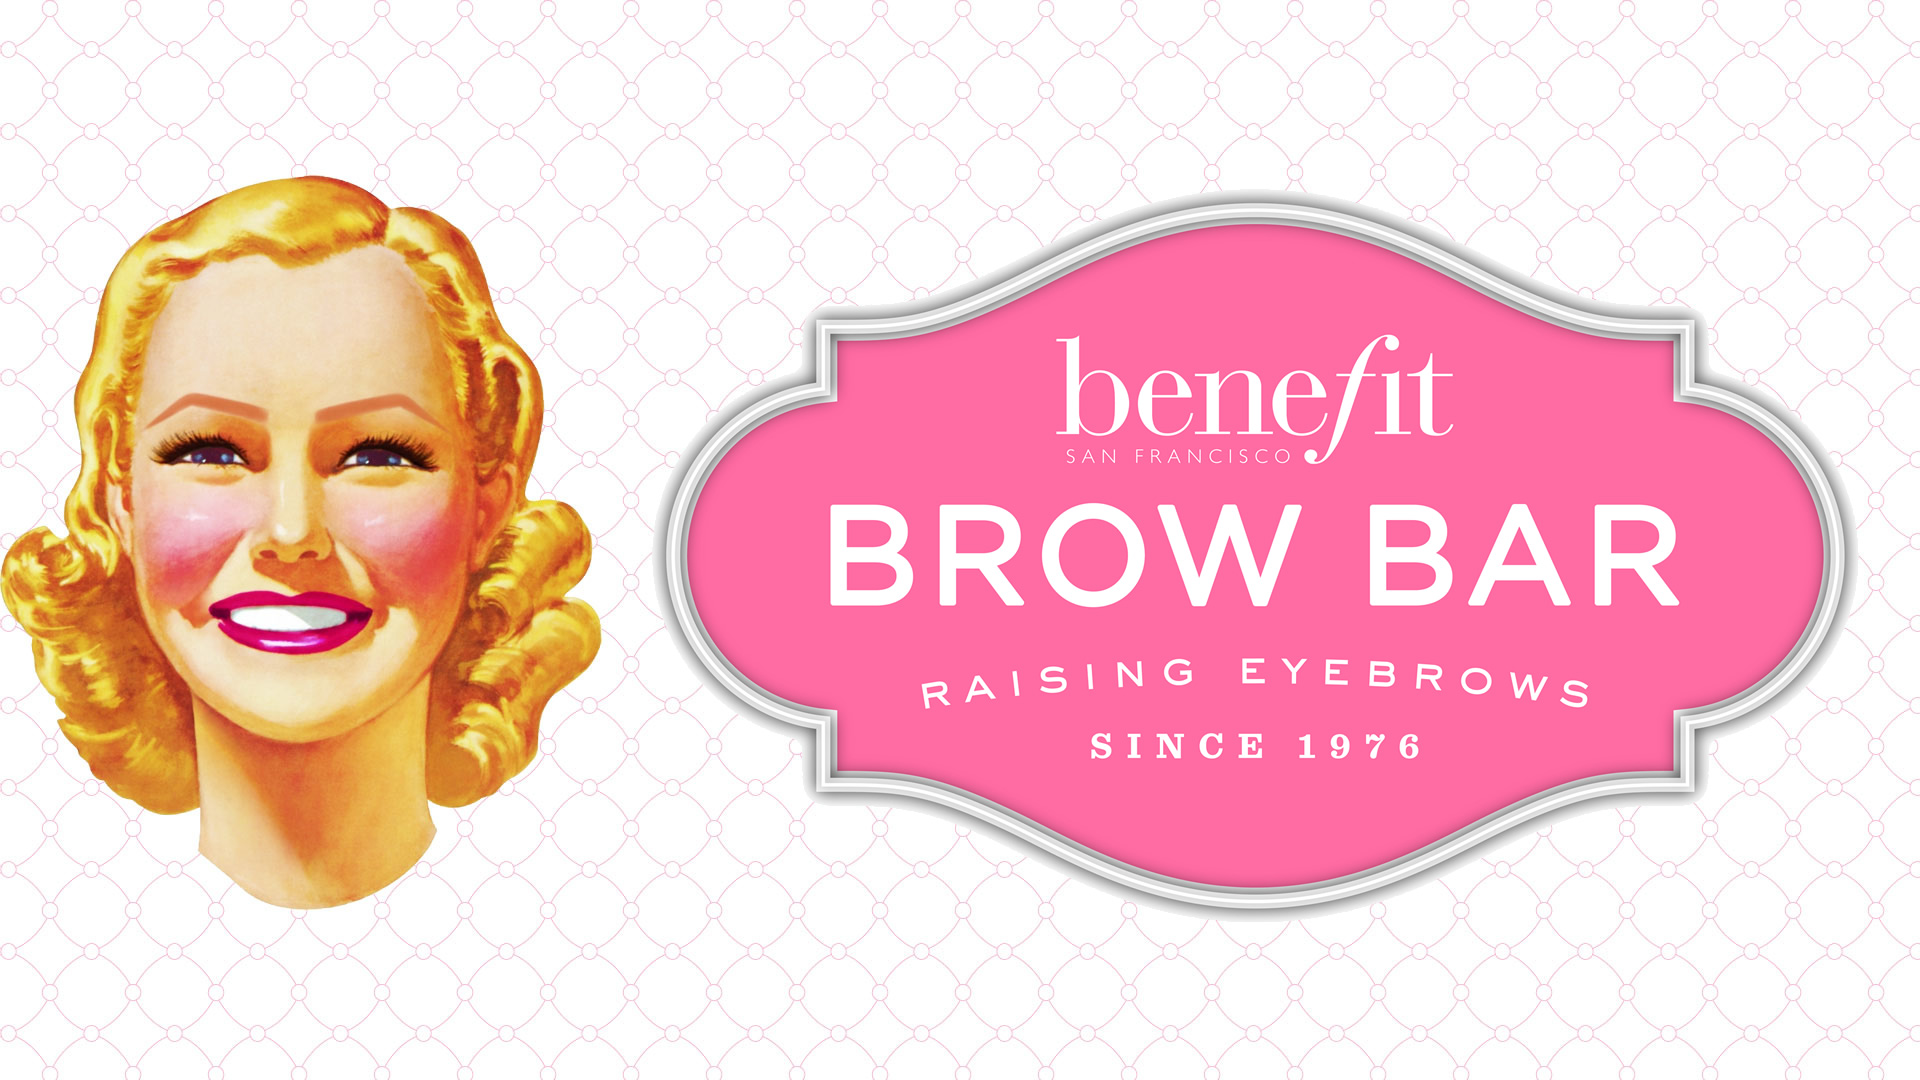 Benefit-brow-bar_Grande